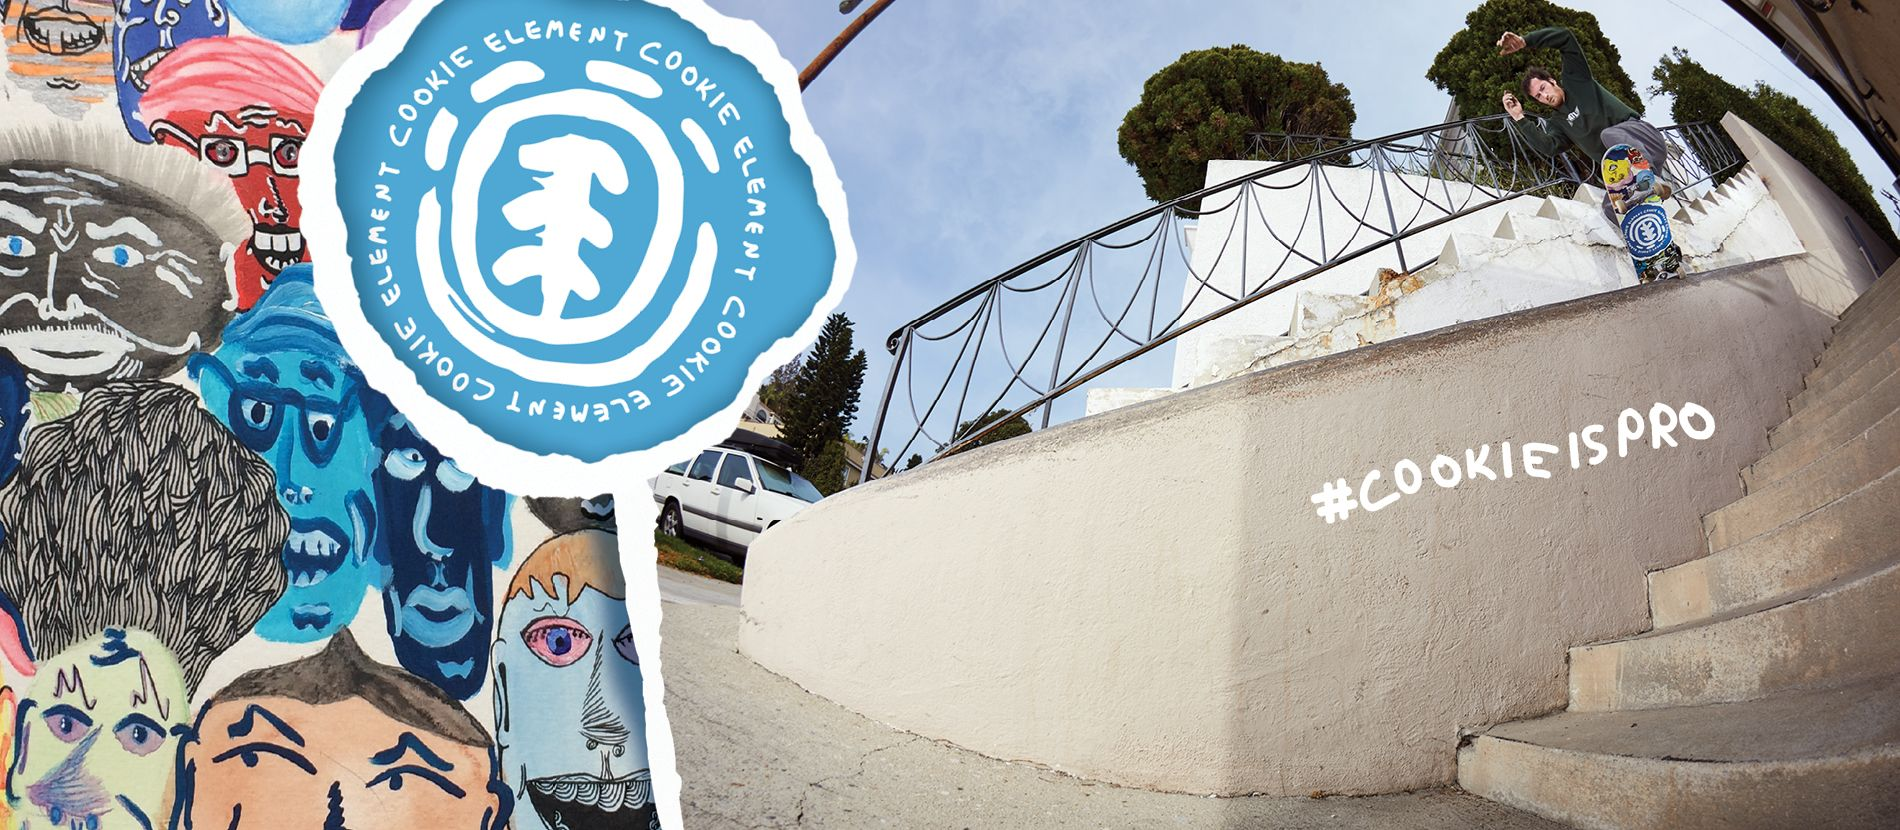 Element | Skateboarding, The Arts & Nature - Made to Endure